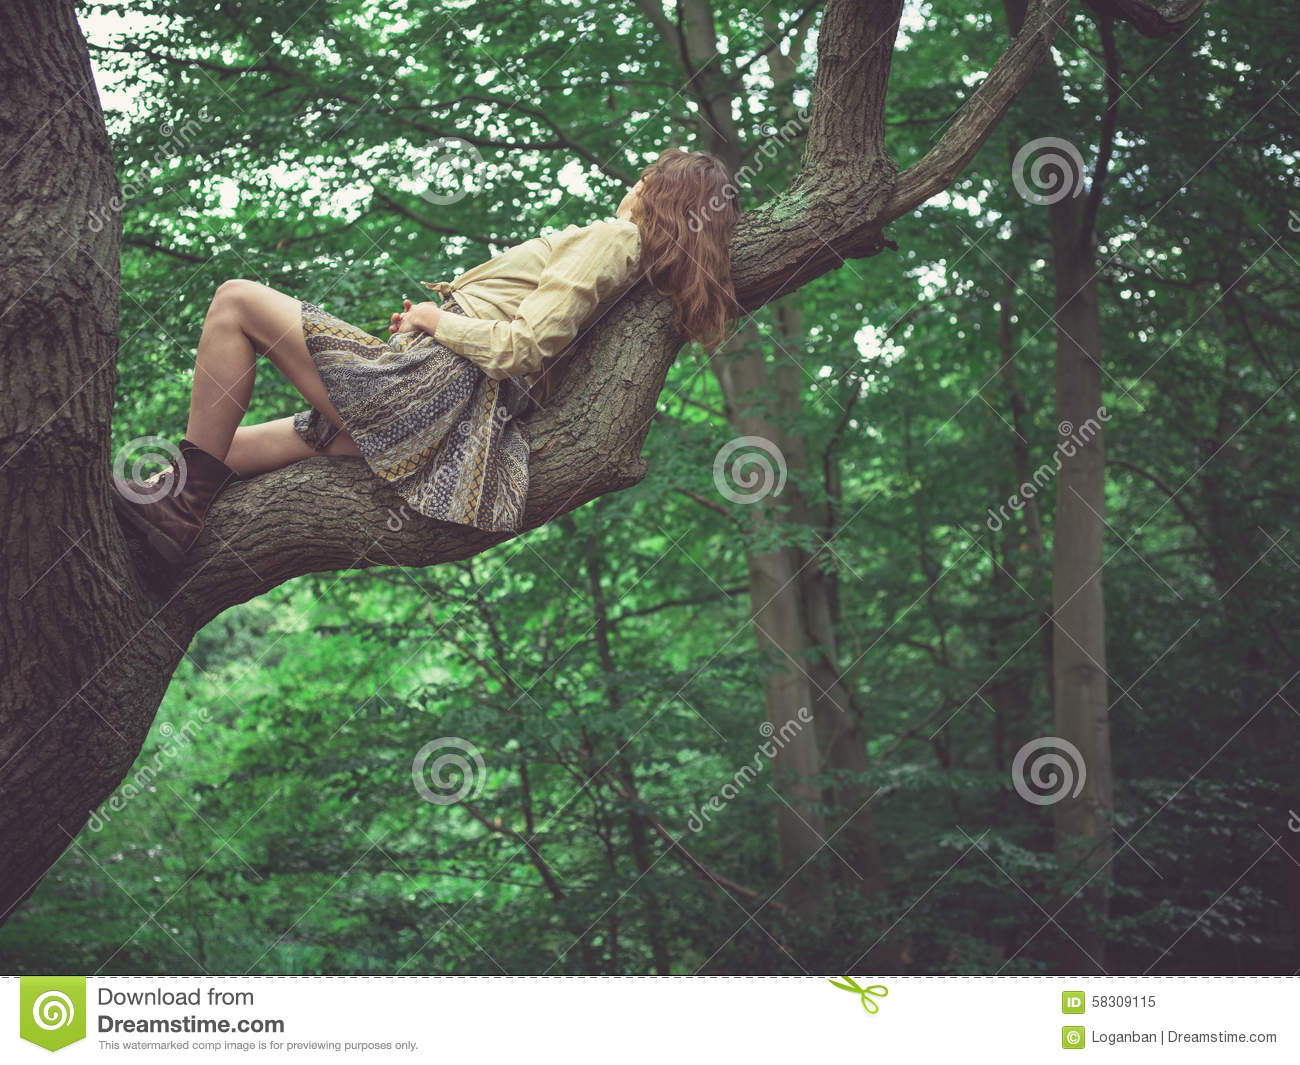 young-woman-lying-tree-branch-forest-583